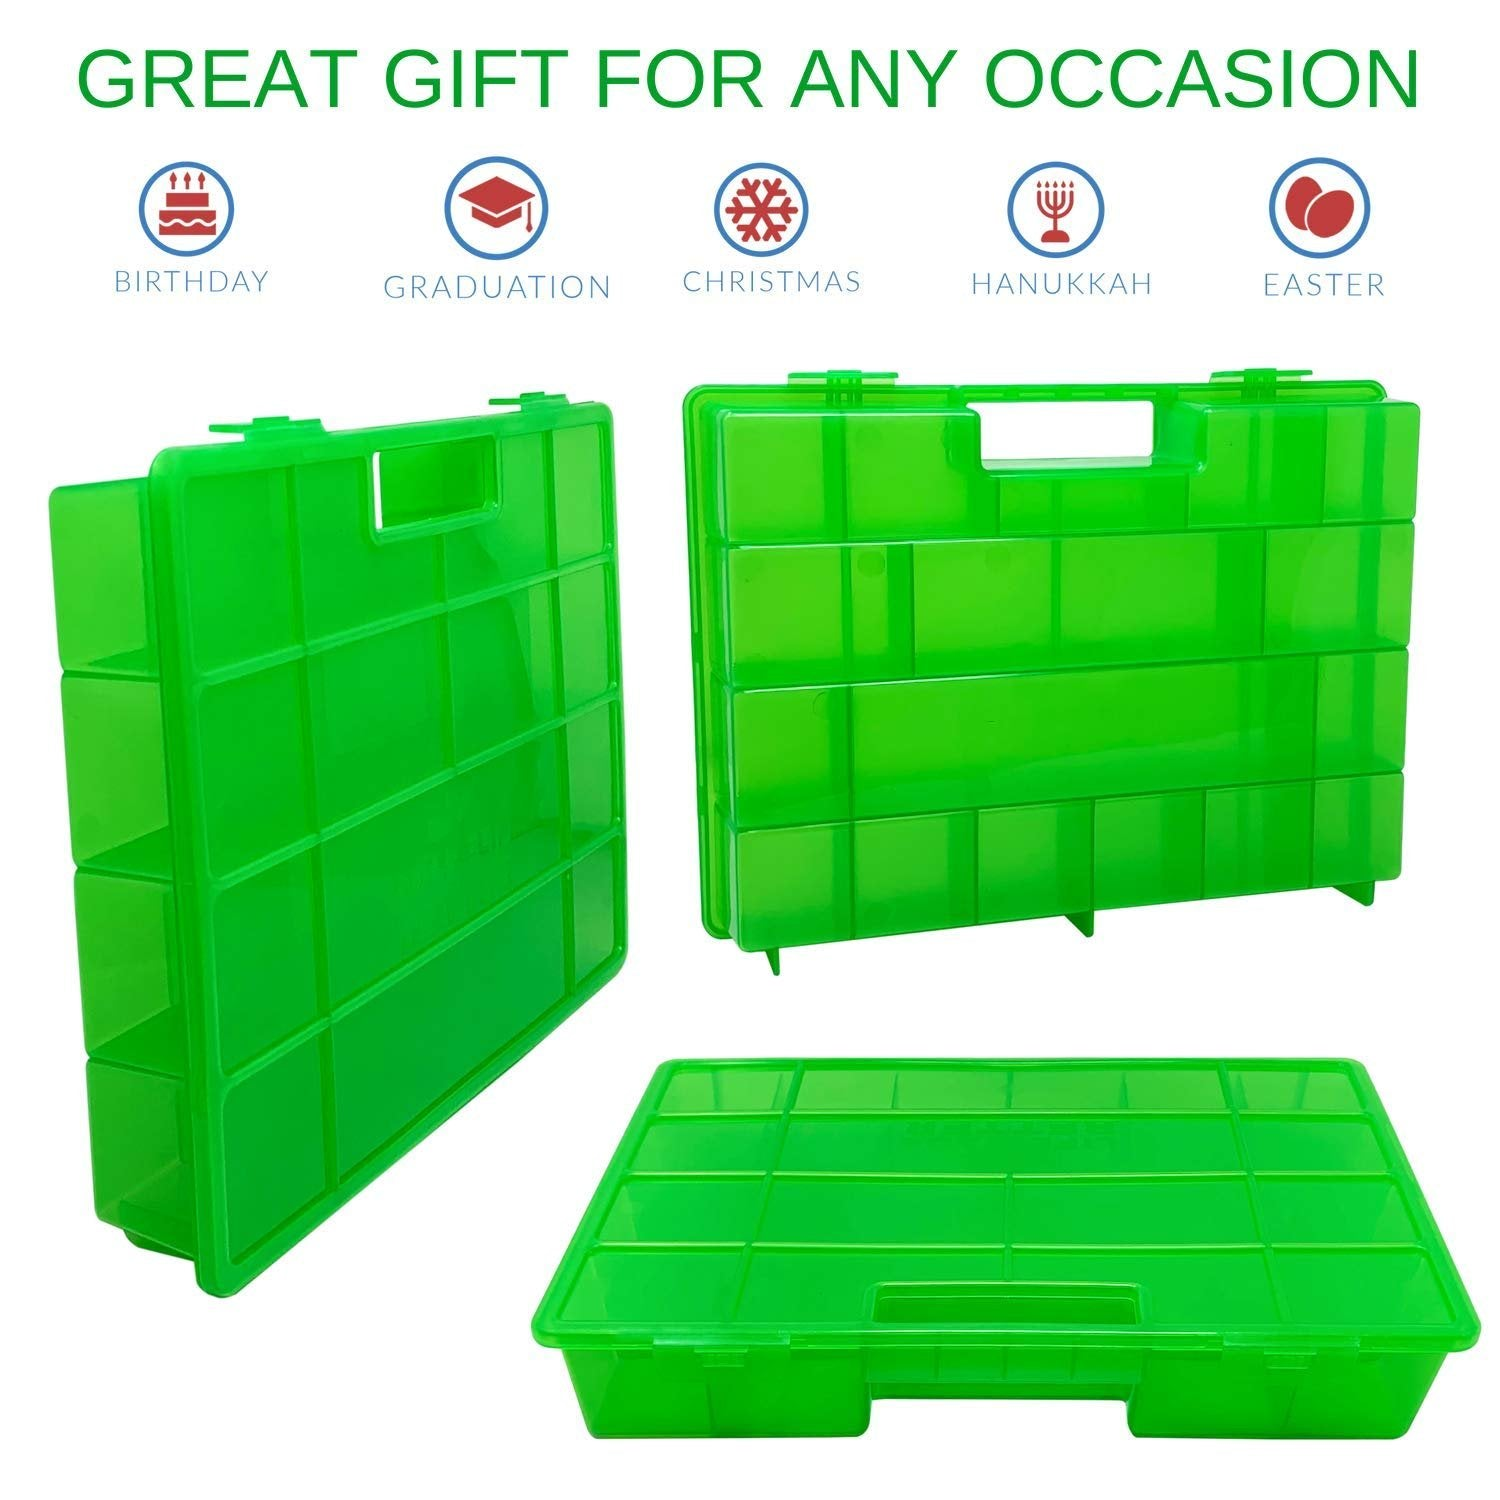 Life Made Better Enhanced Case, Protective, Durable Green Toy Storage Home or On-The-Go Box. Figures Playset Organizer Compatible with Shimmer Shine Teenie Genies, Accessories Kids LMB